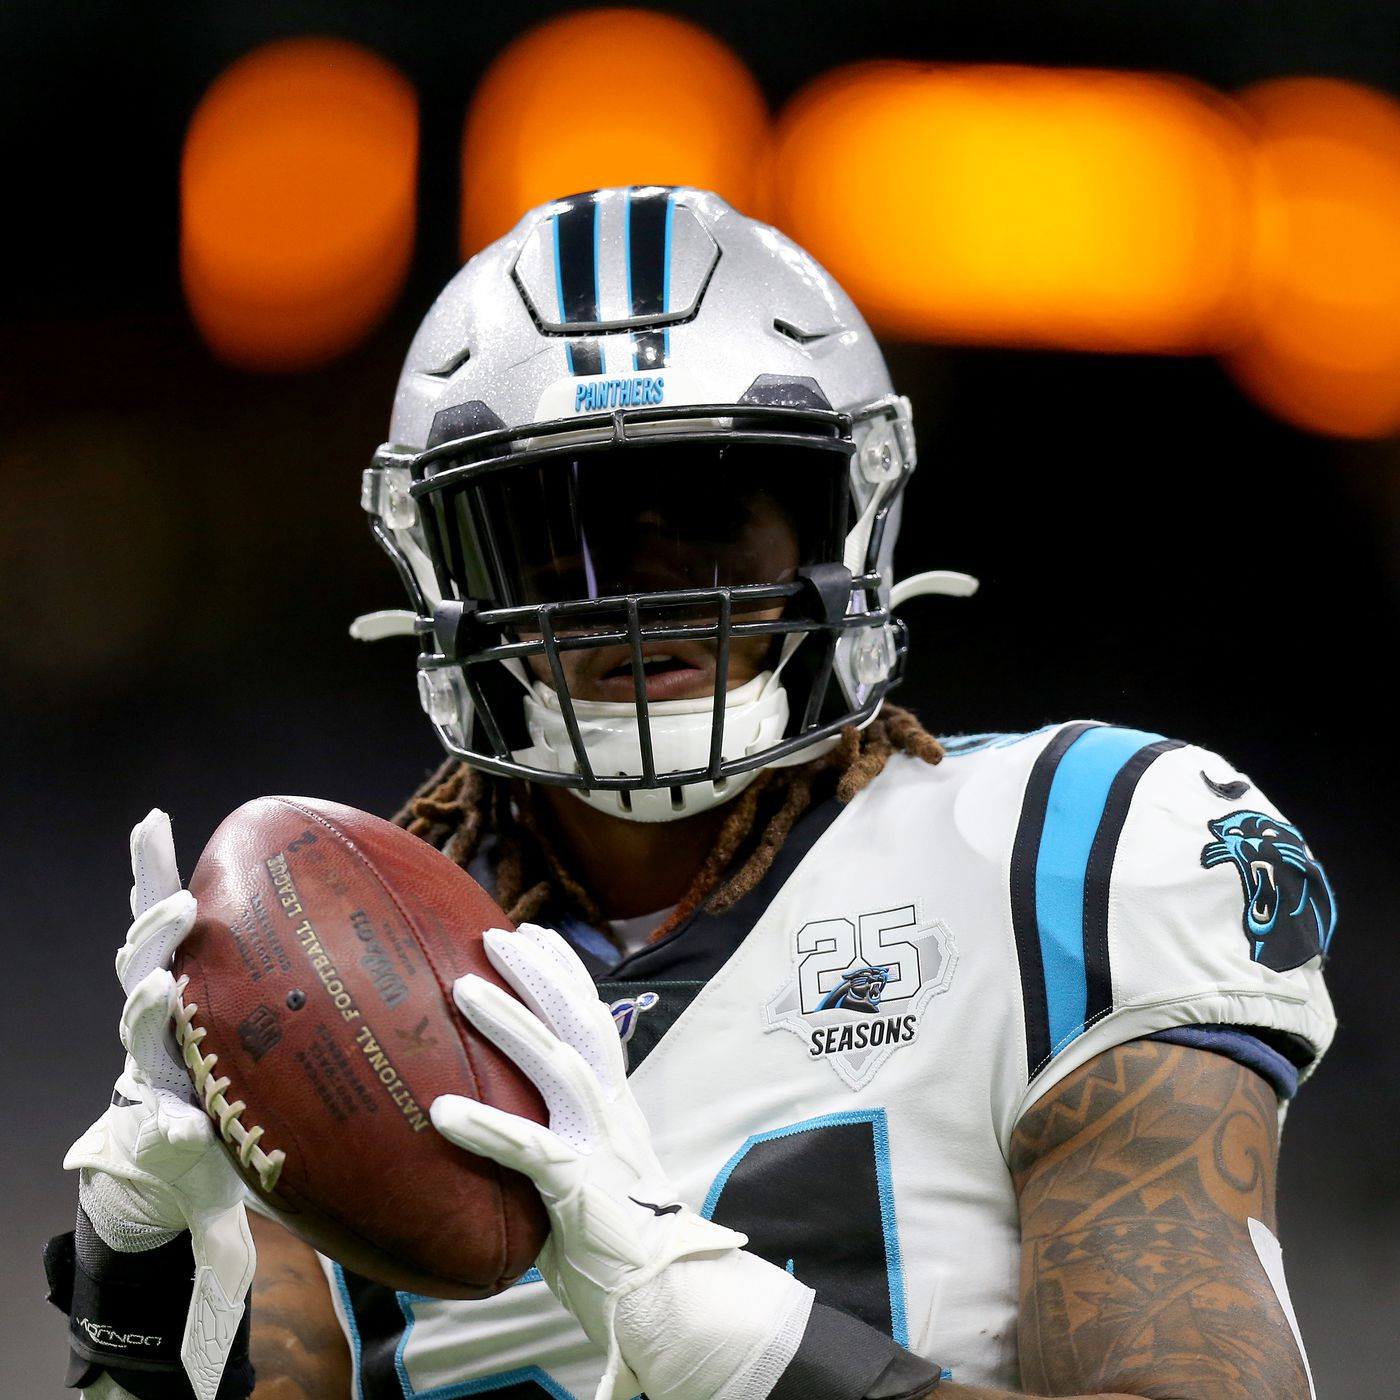 Carolina Panthers 2020 Schedule.What Panthers 2020 Free Agents Would You Like To See On The